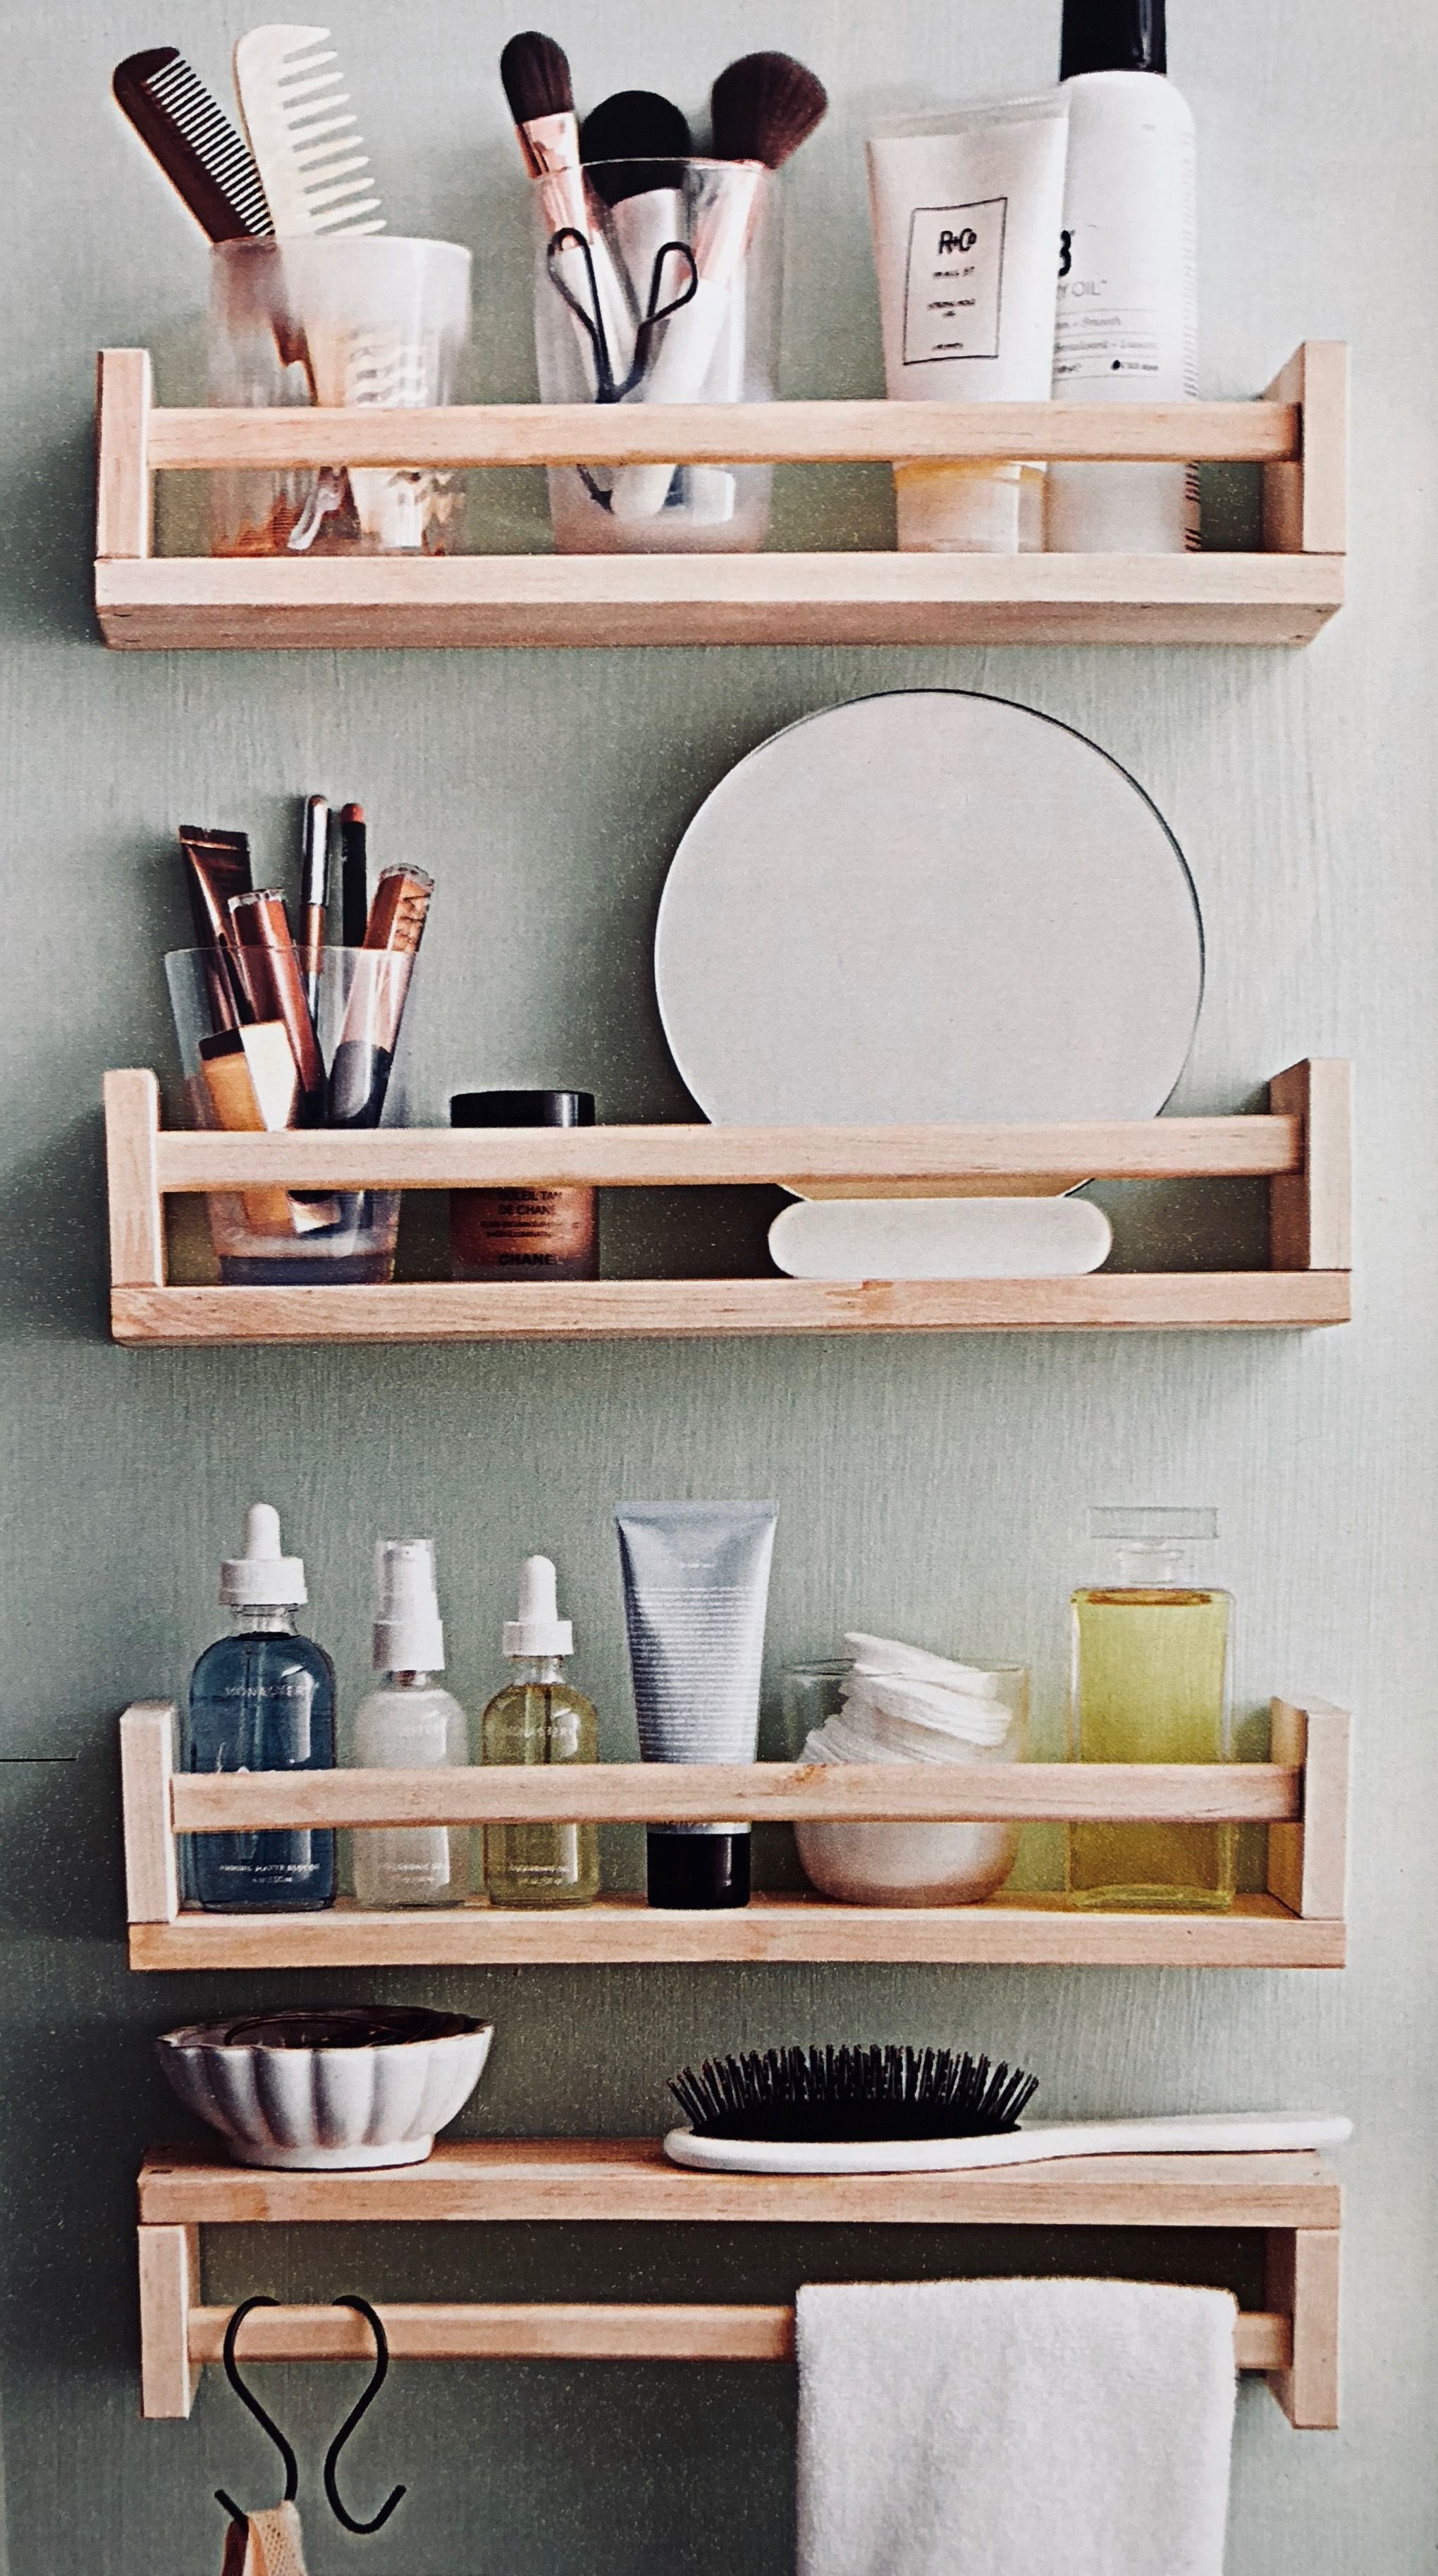 56 Ways To Use Ikea Spice Racks All Over Your Space Muebles Para